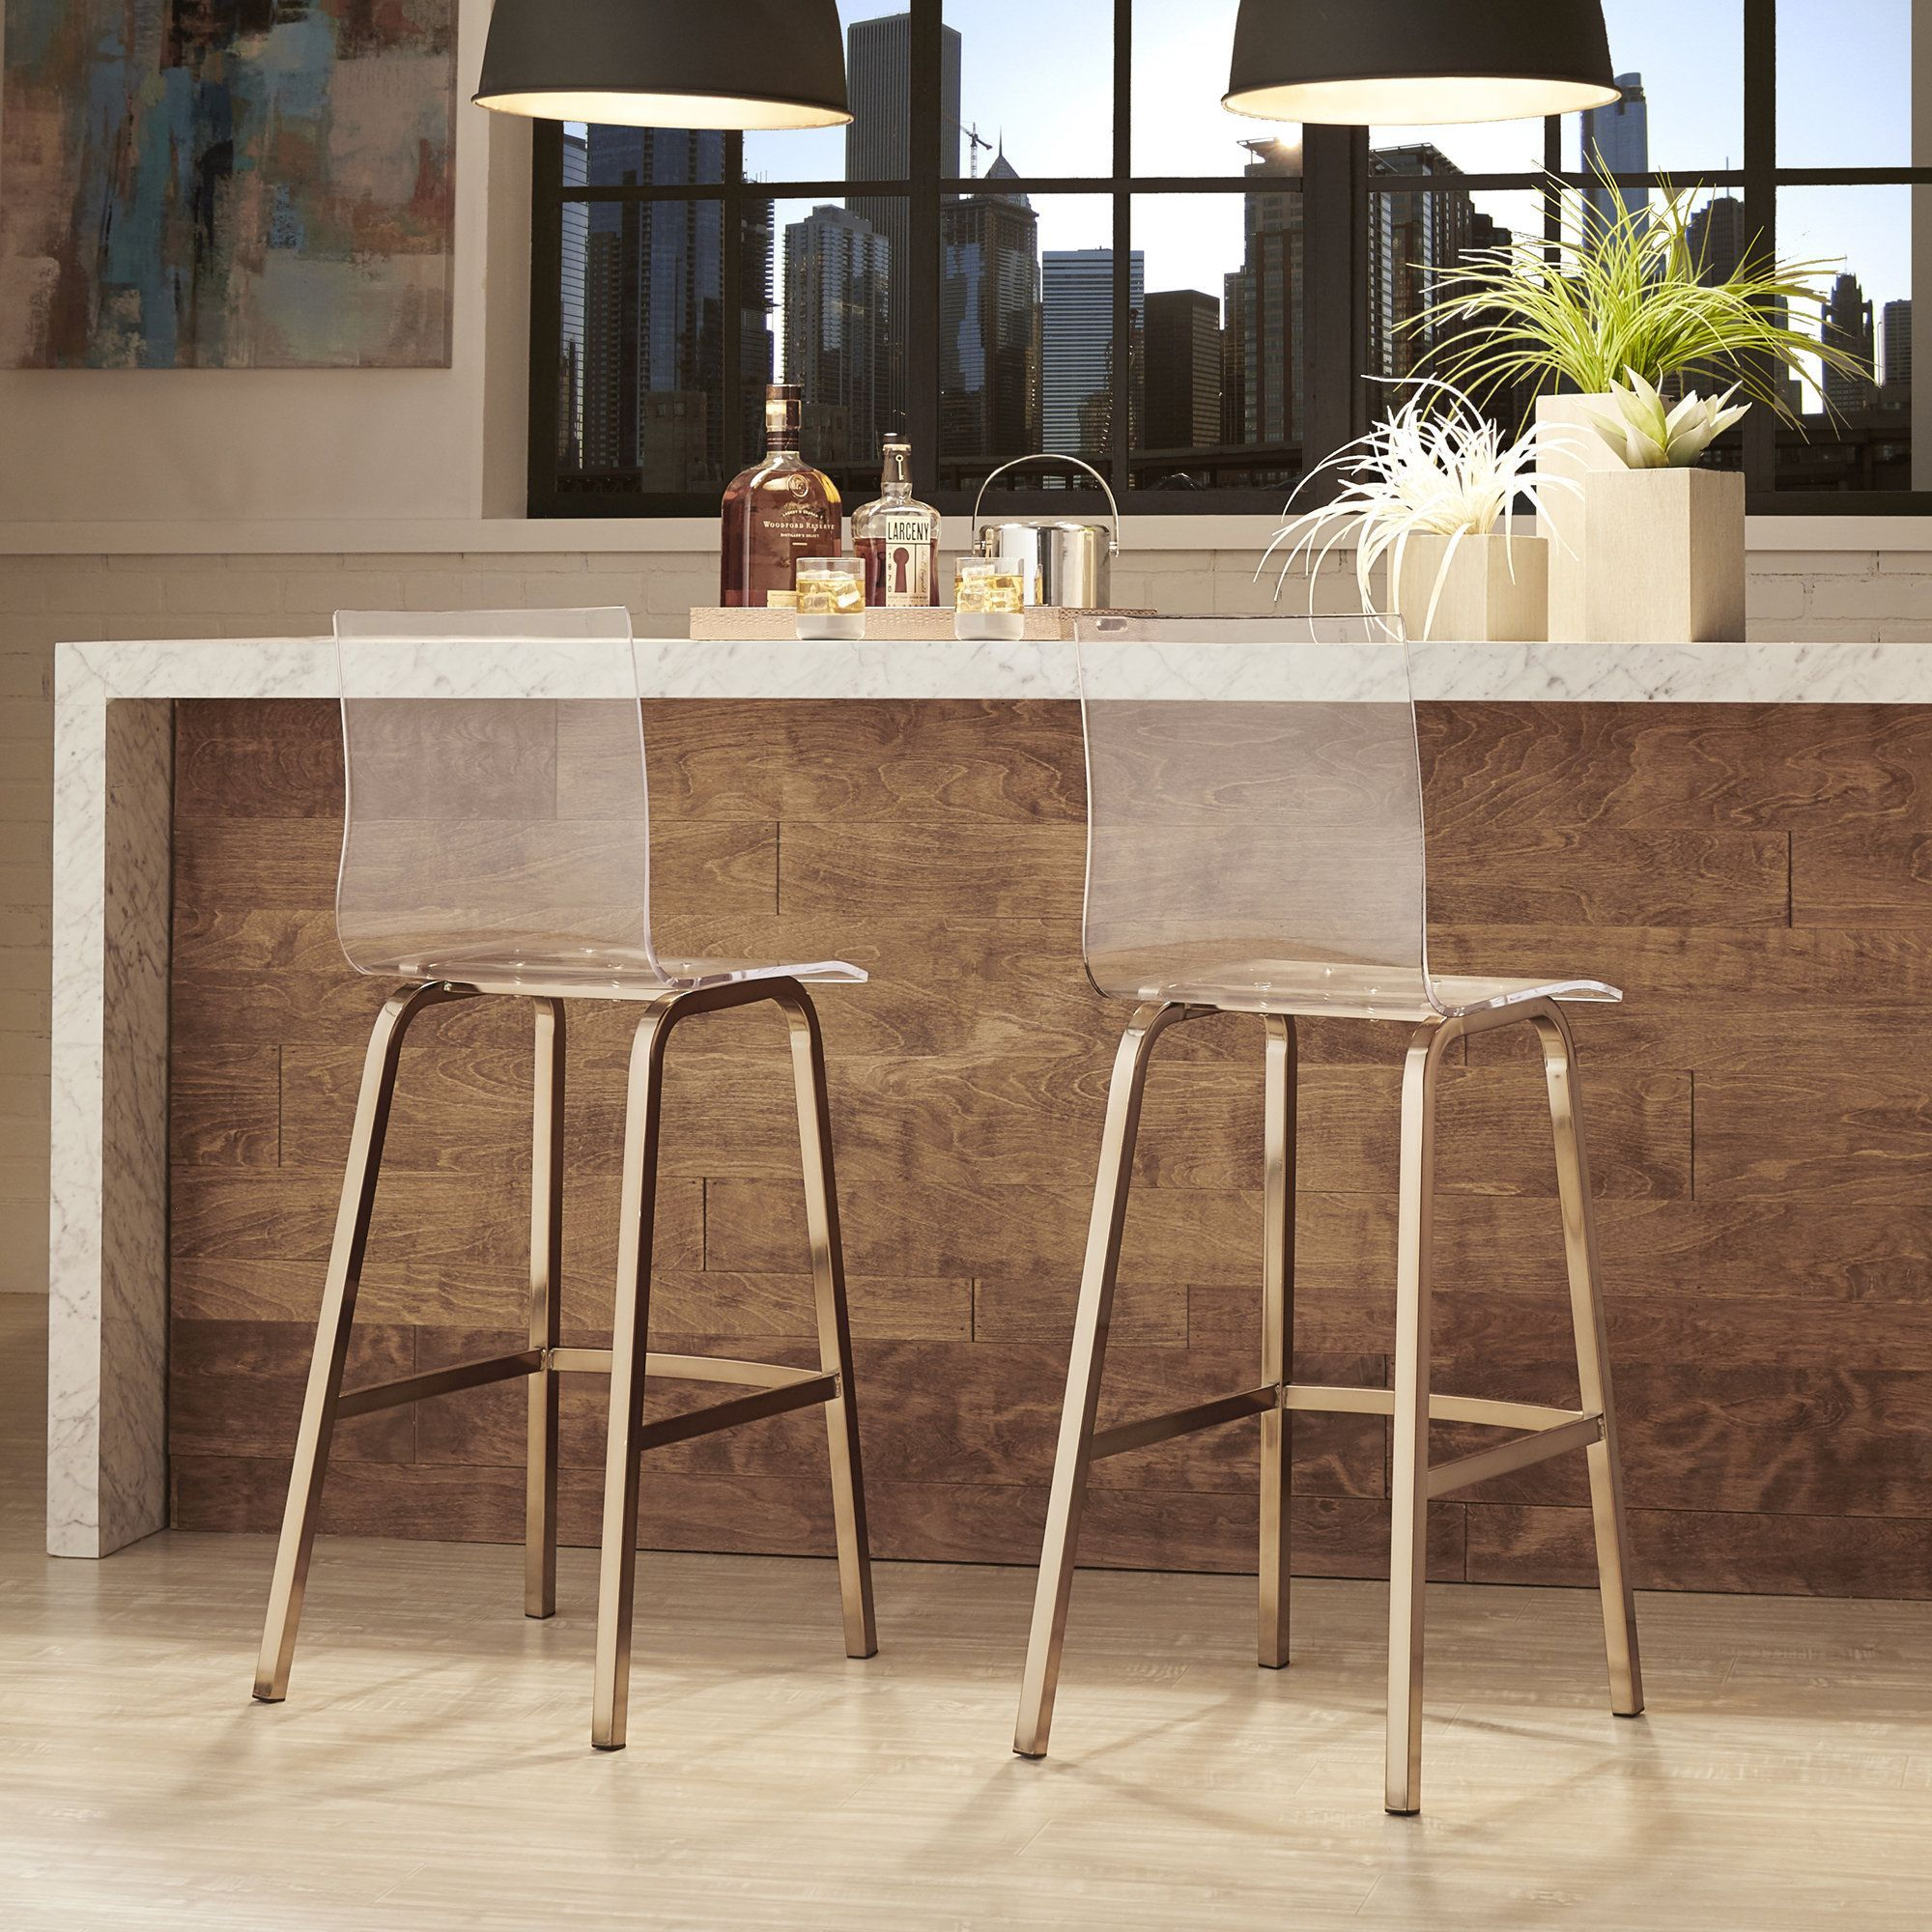 Miles Clear Acrylic Swivel High Back Bar Stools With Back Set Of